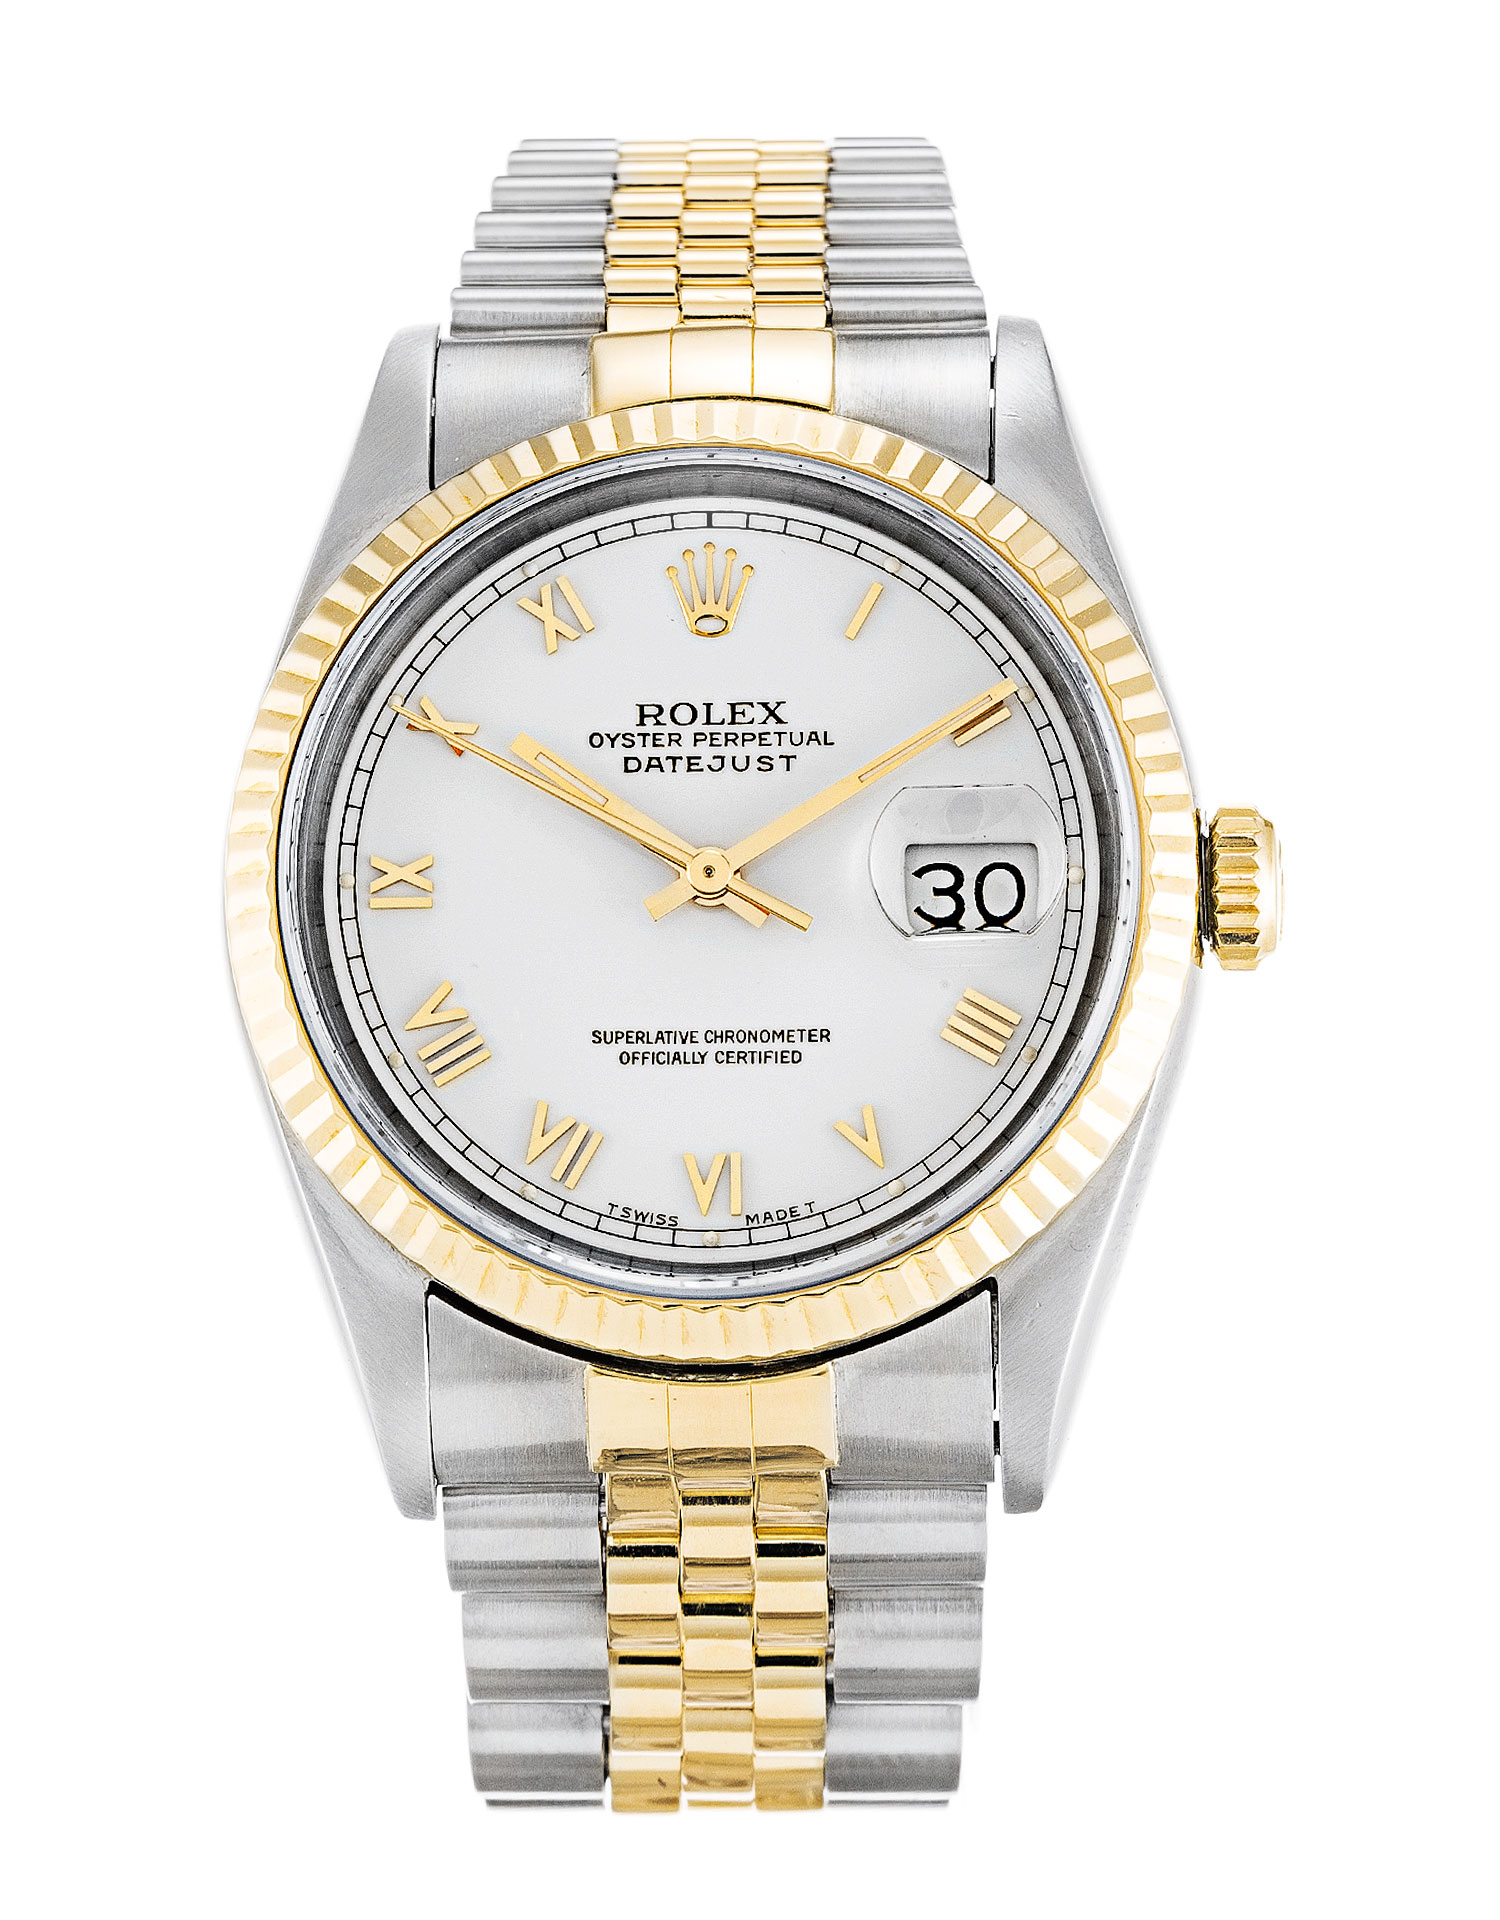 Rolex Datejust 16233 Unisex 36 Mm Steel & Yellow Gold Case Automatic Movement – iapac.to